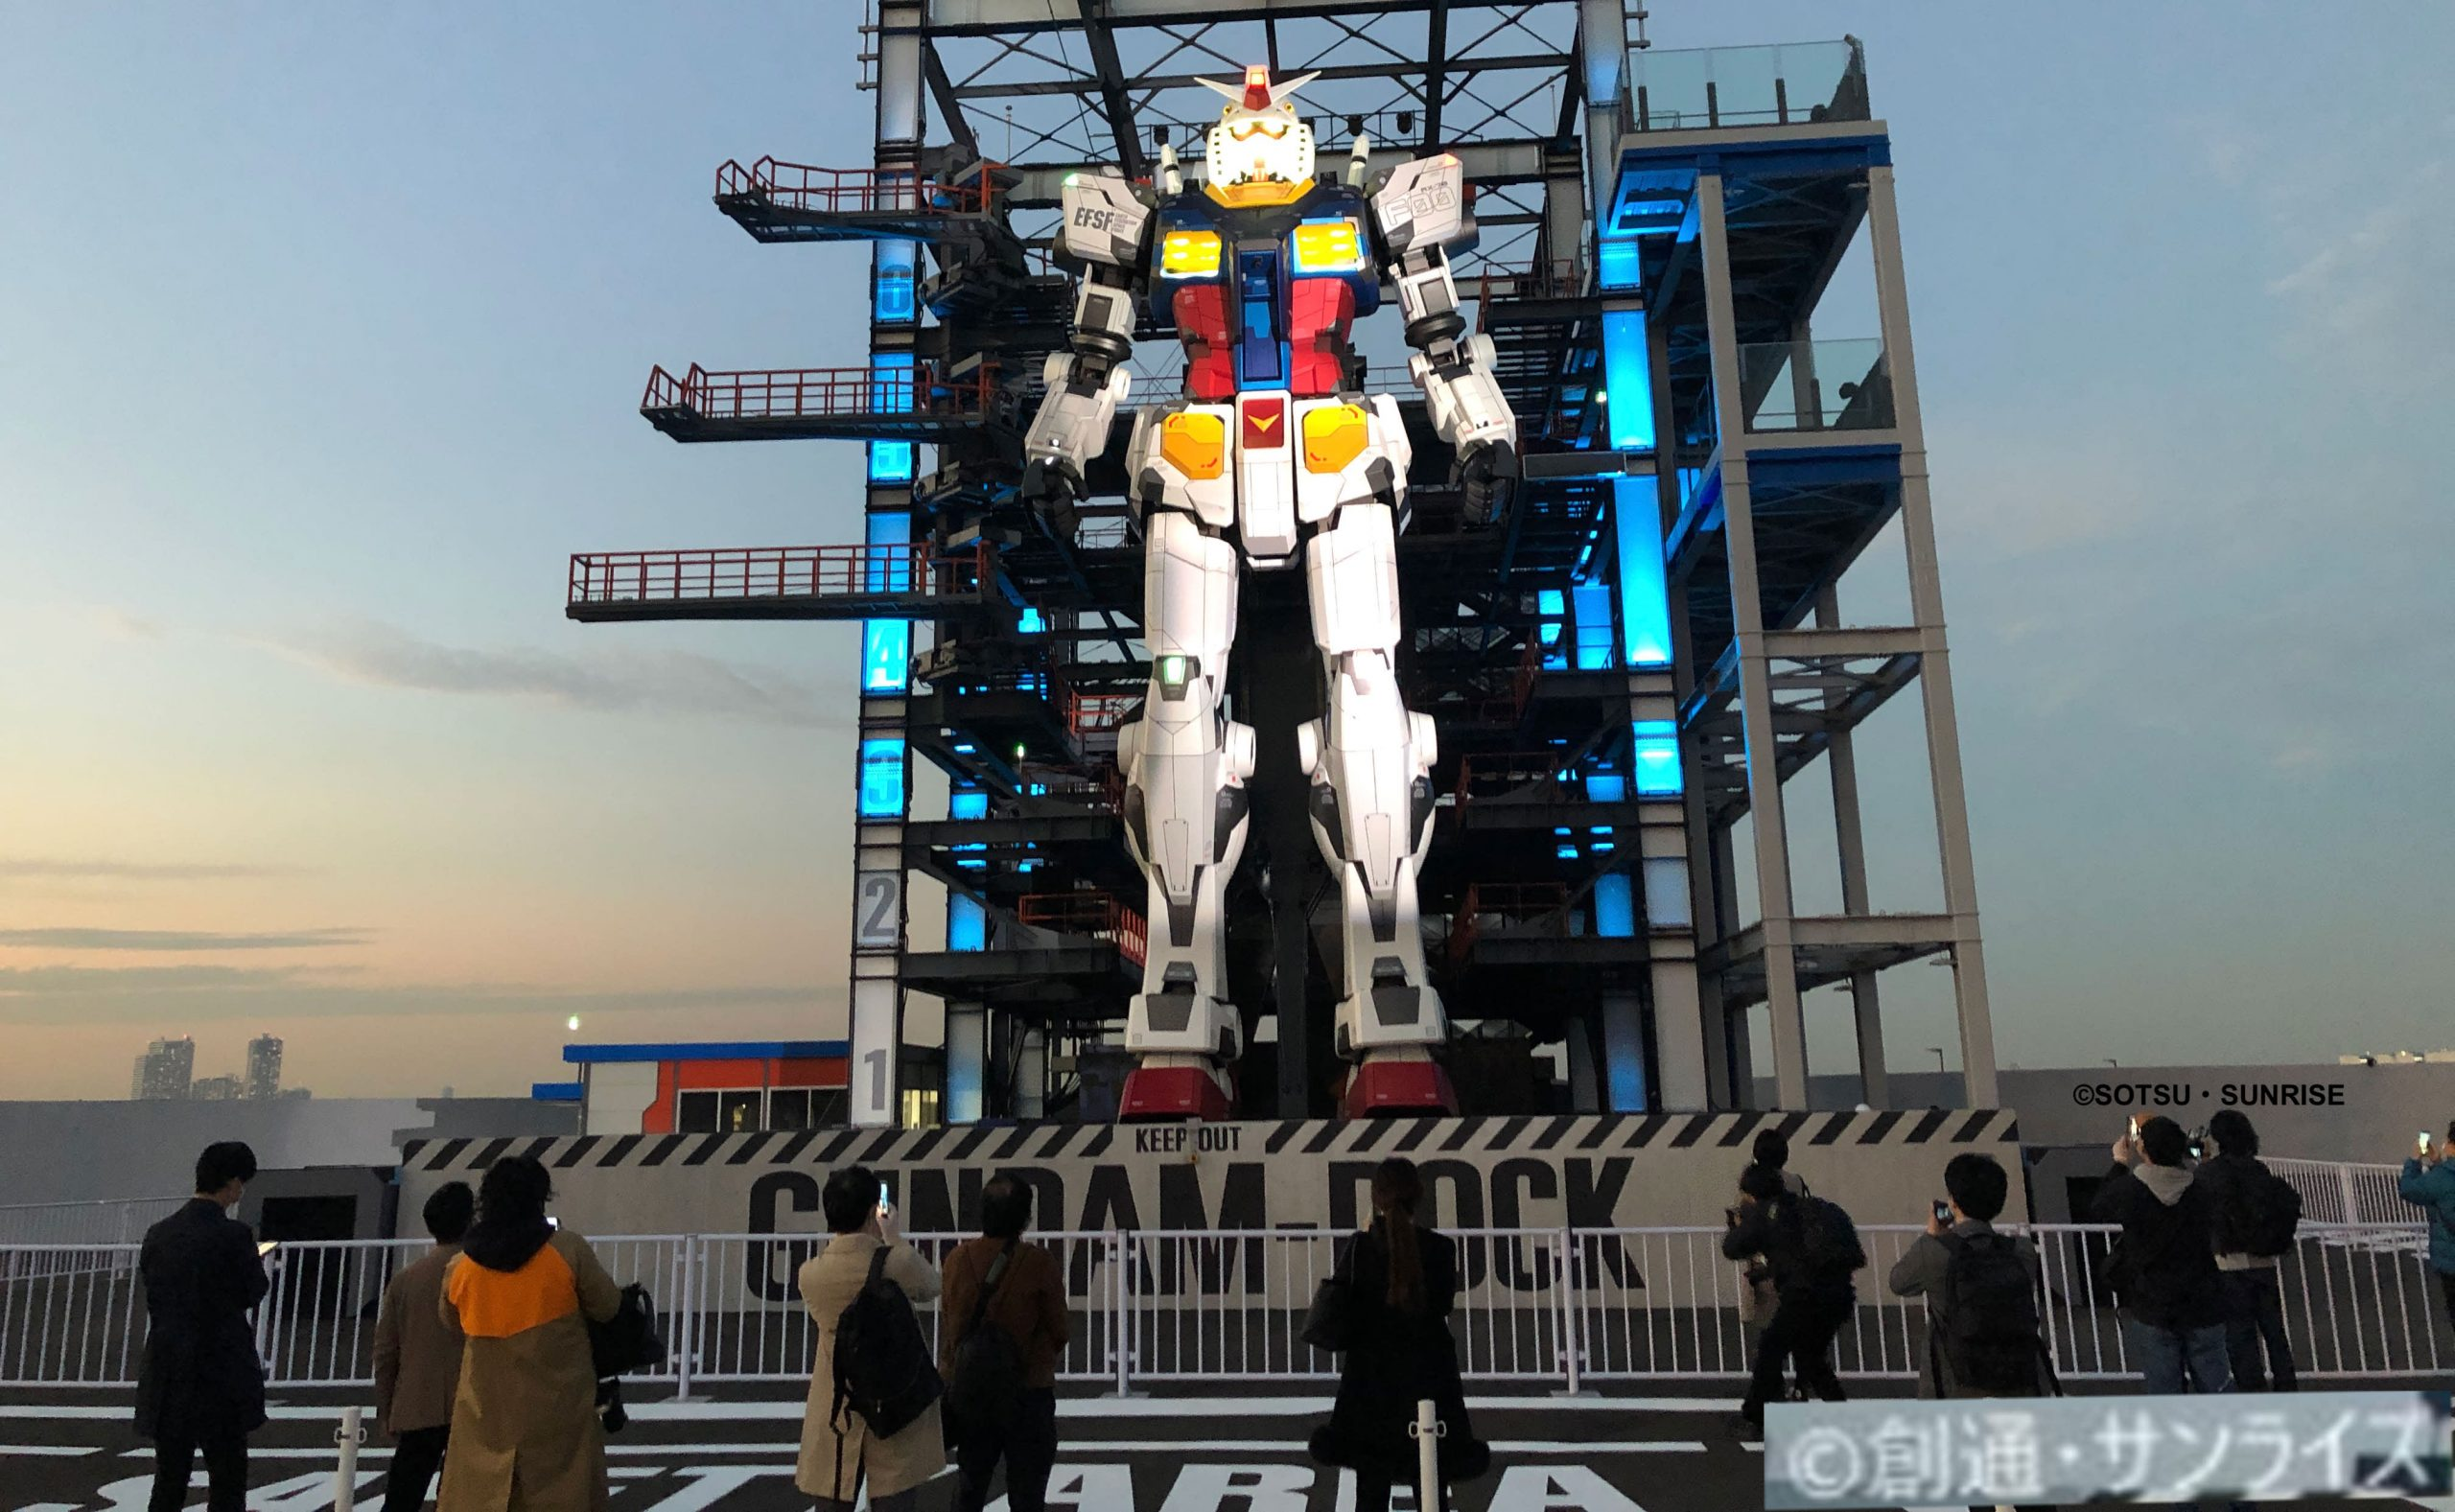 popularity-of-entertainment-robots-grows-amid-pandemic